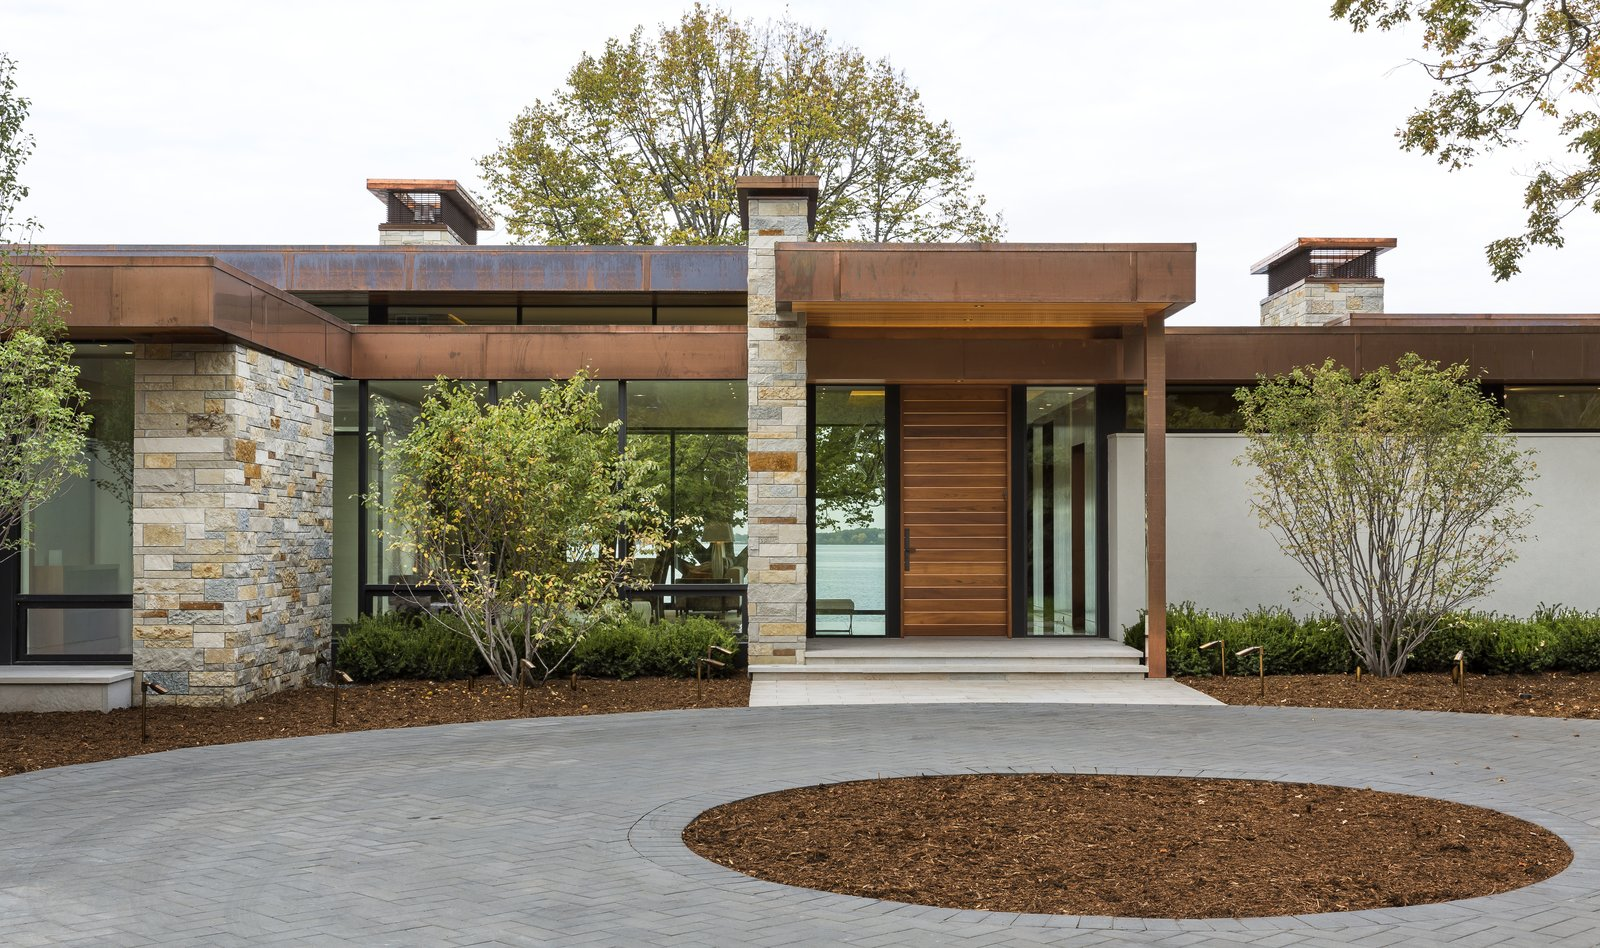 Exterior, Flat RoofLine, Metal Roof Material, Wood Siding Material, House Building Type, Glass Siding Material, Stucco Siding Material, and Stone Siding Material  Shoreline Residence by PKA Architecture